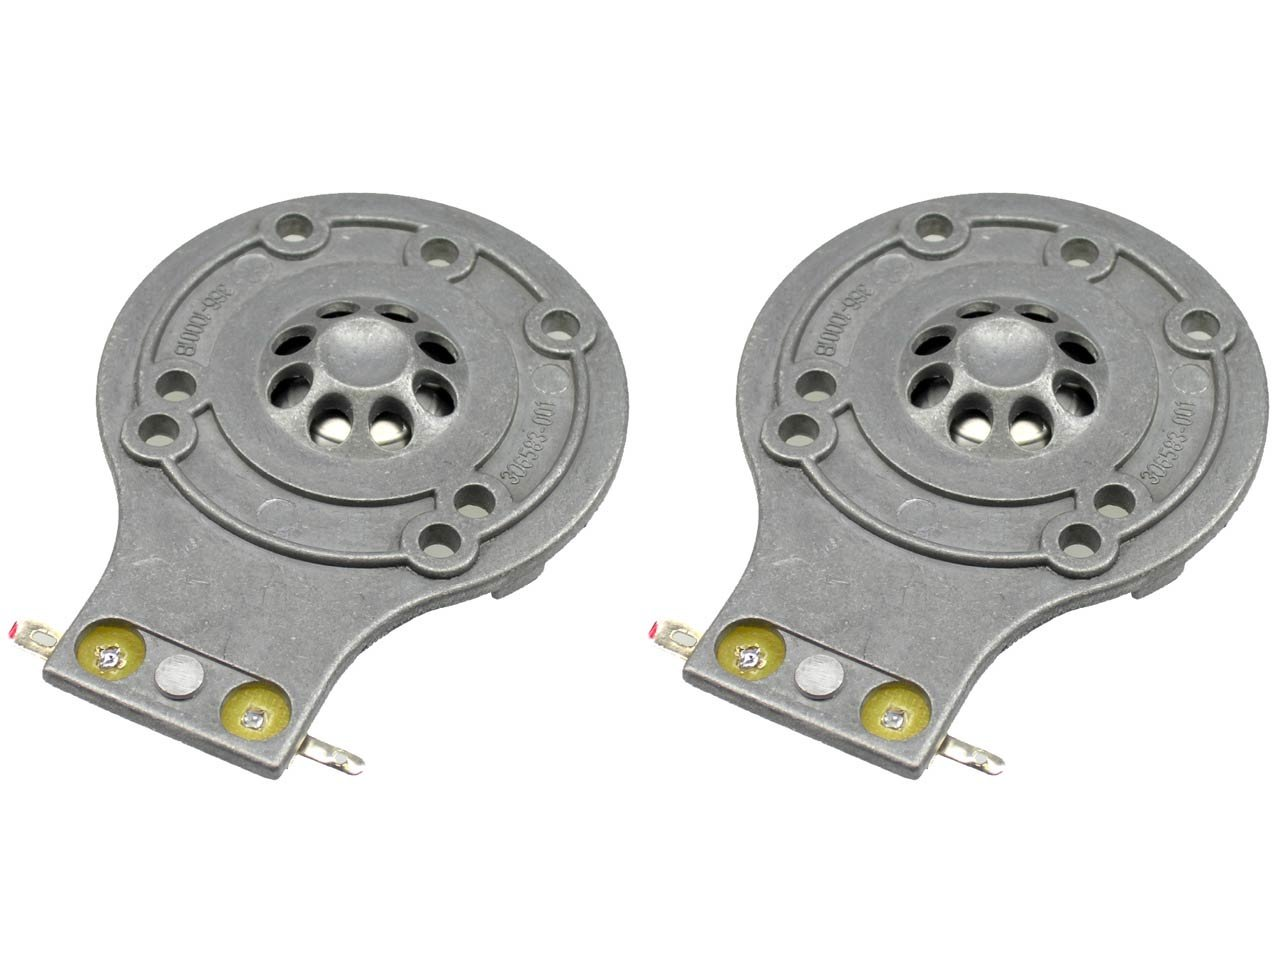 SS Audio Diaphragm for JBL 2412H, 2412H-1, 2413, JRX, TR Series, MPro, Sound Factor, D-2412-2 (2 PACK) by Simply Speakers